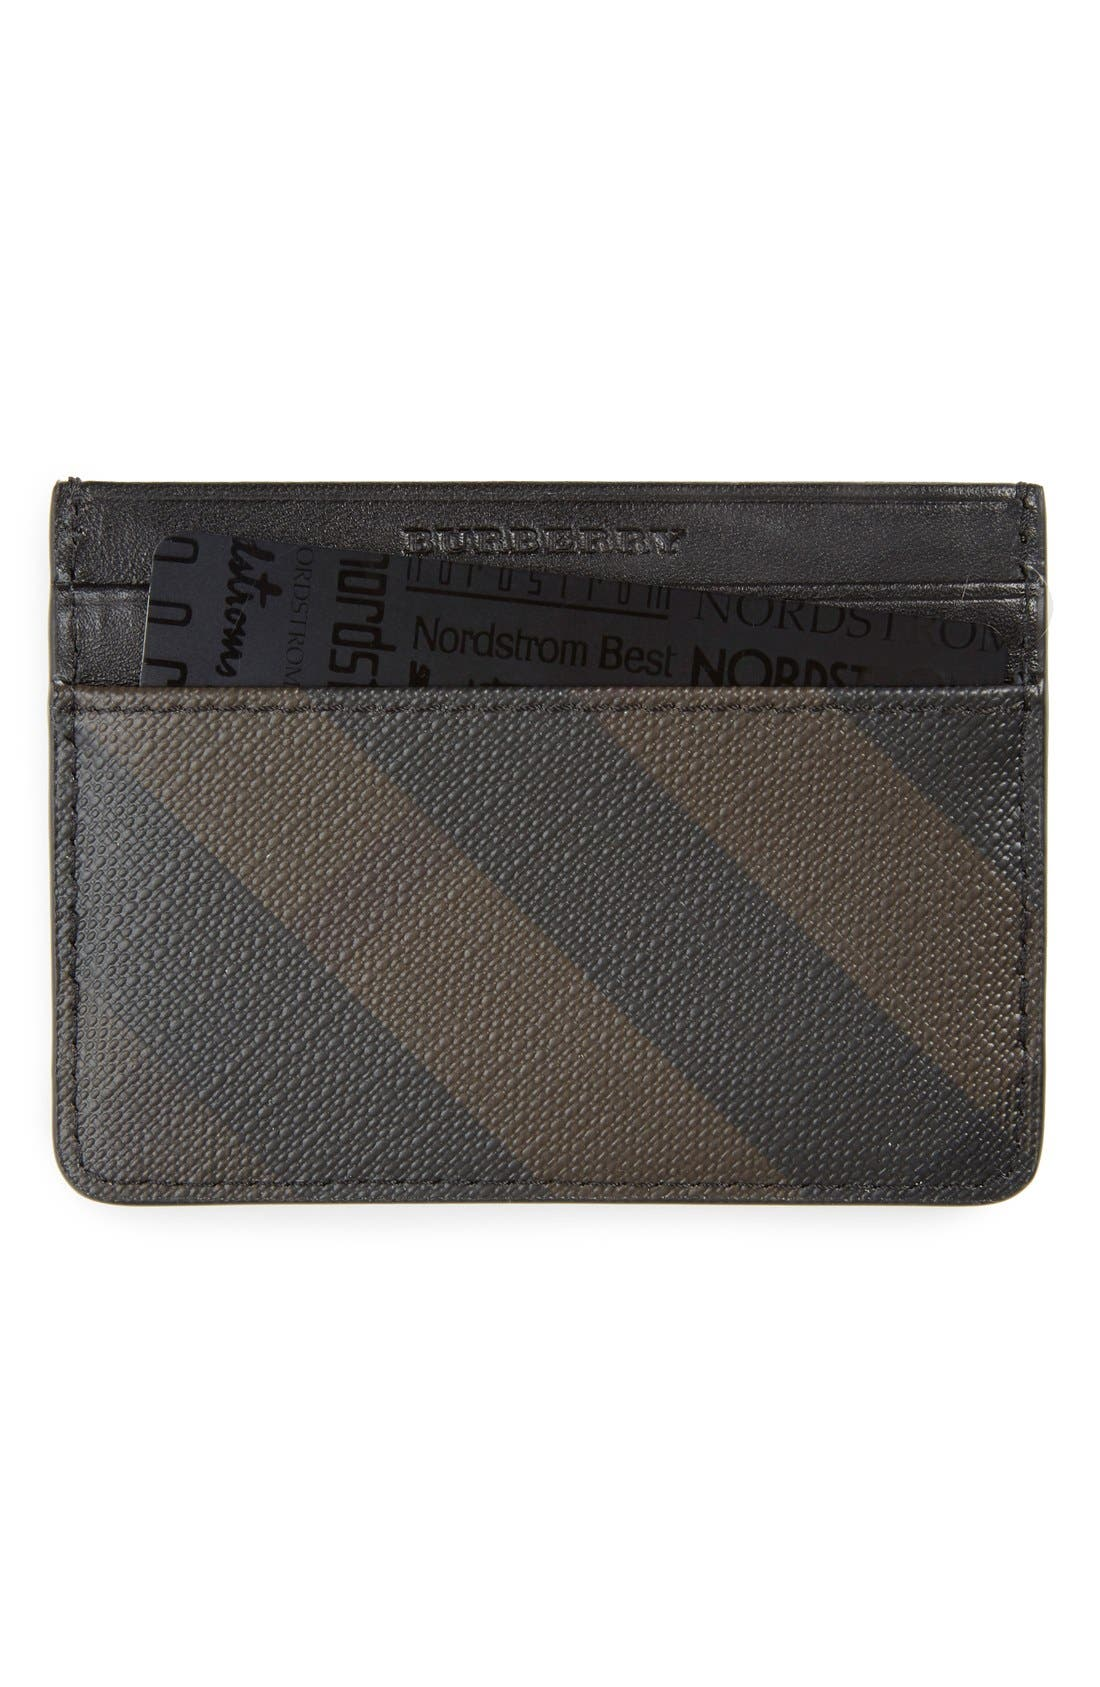 BURBERRY 'New London' Check Card Case, Main, color, 207